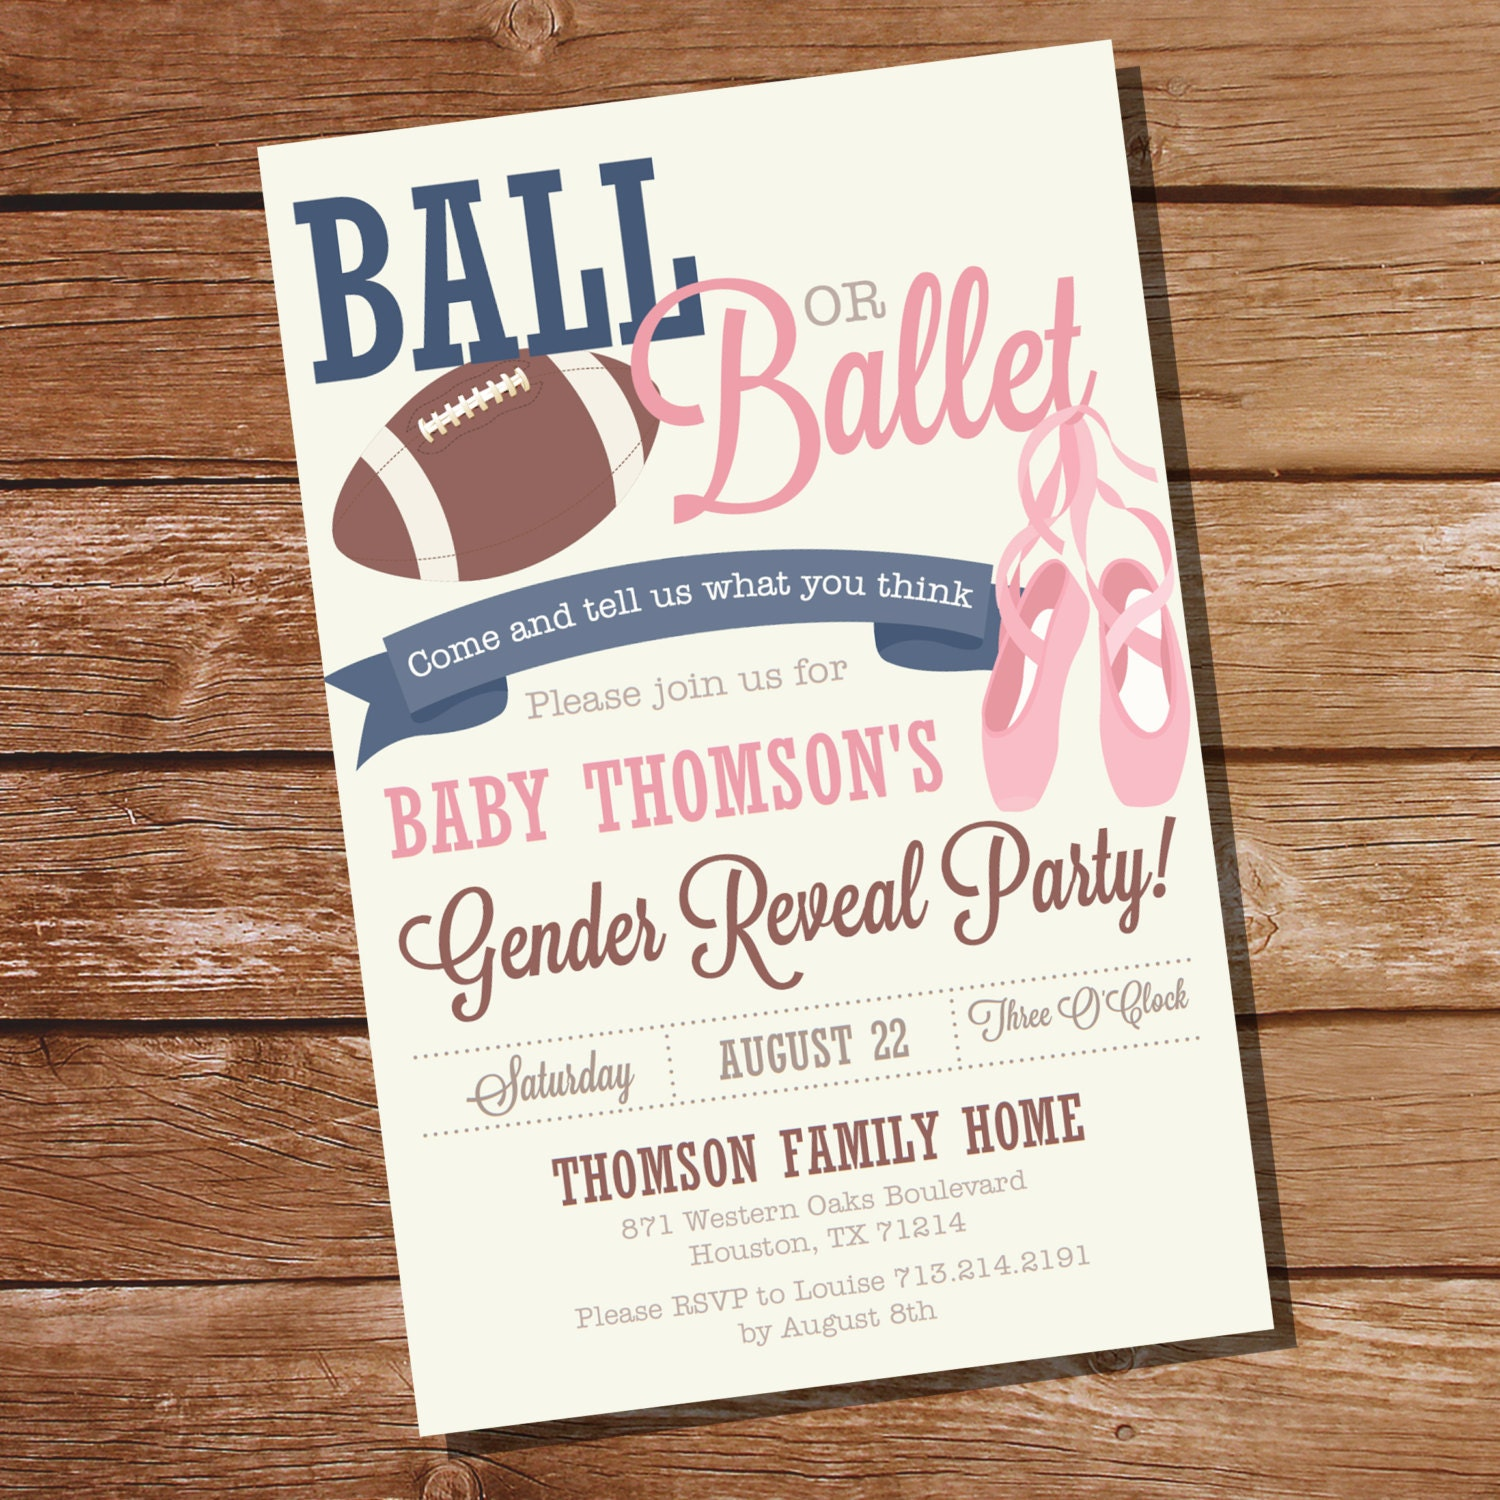 Ball or Ballet Gender Reveal Party Invitation Football or